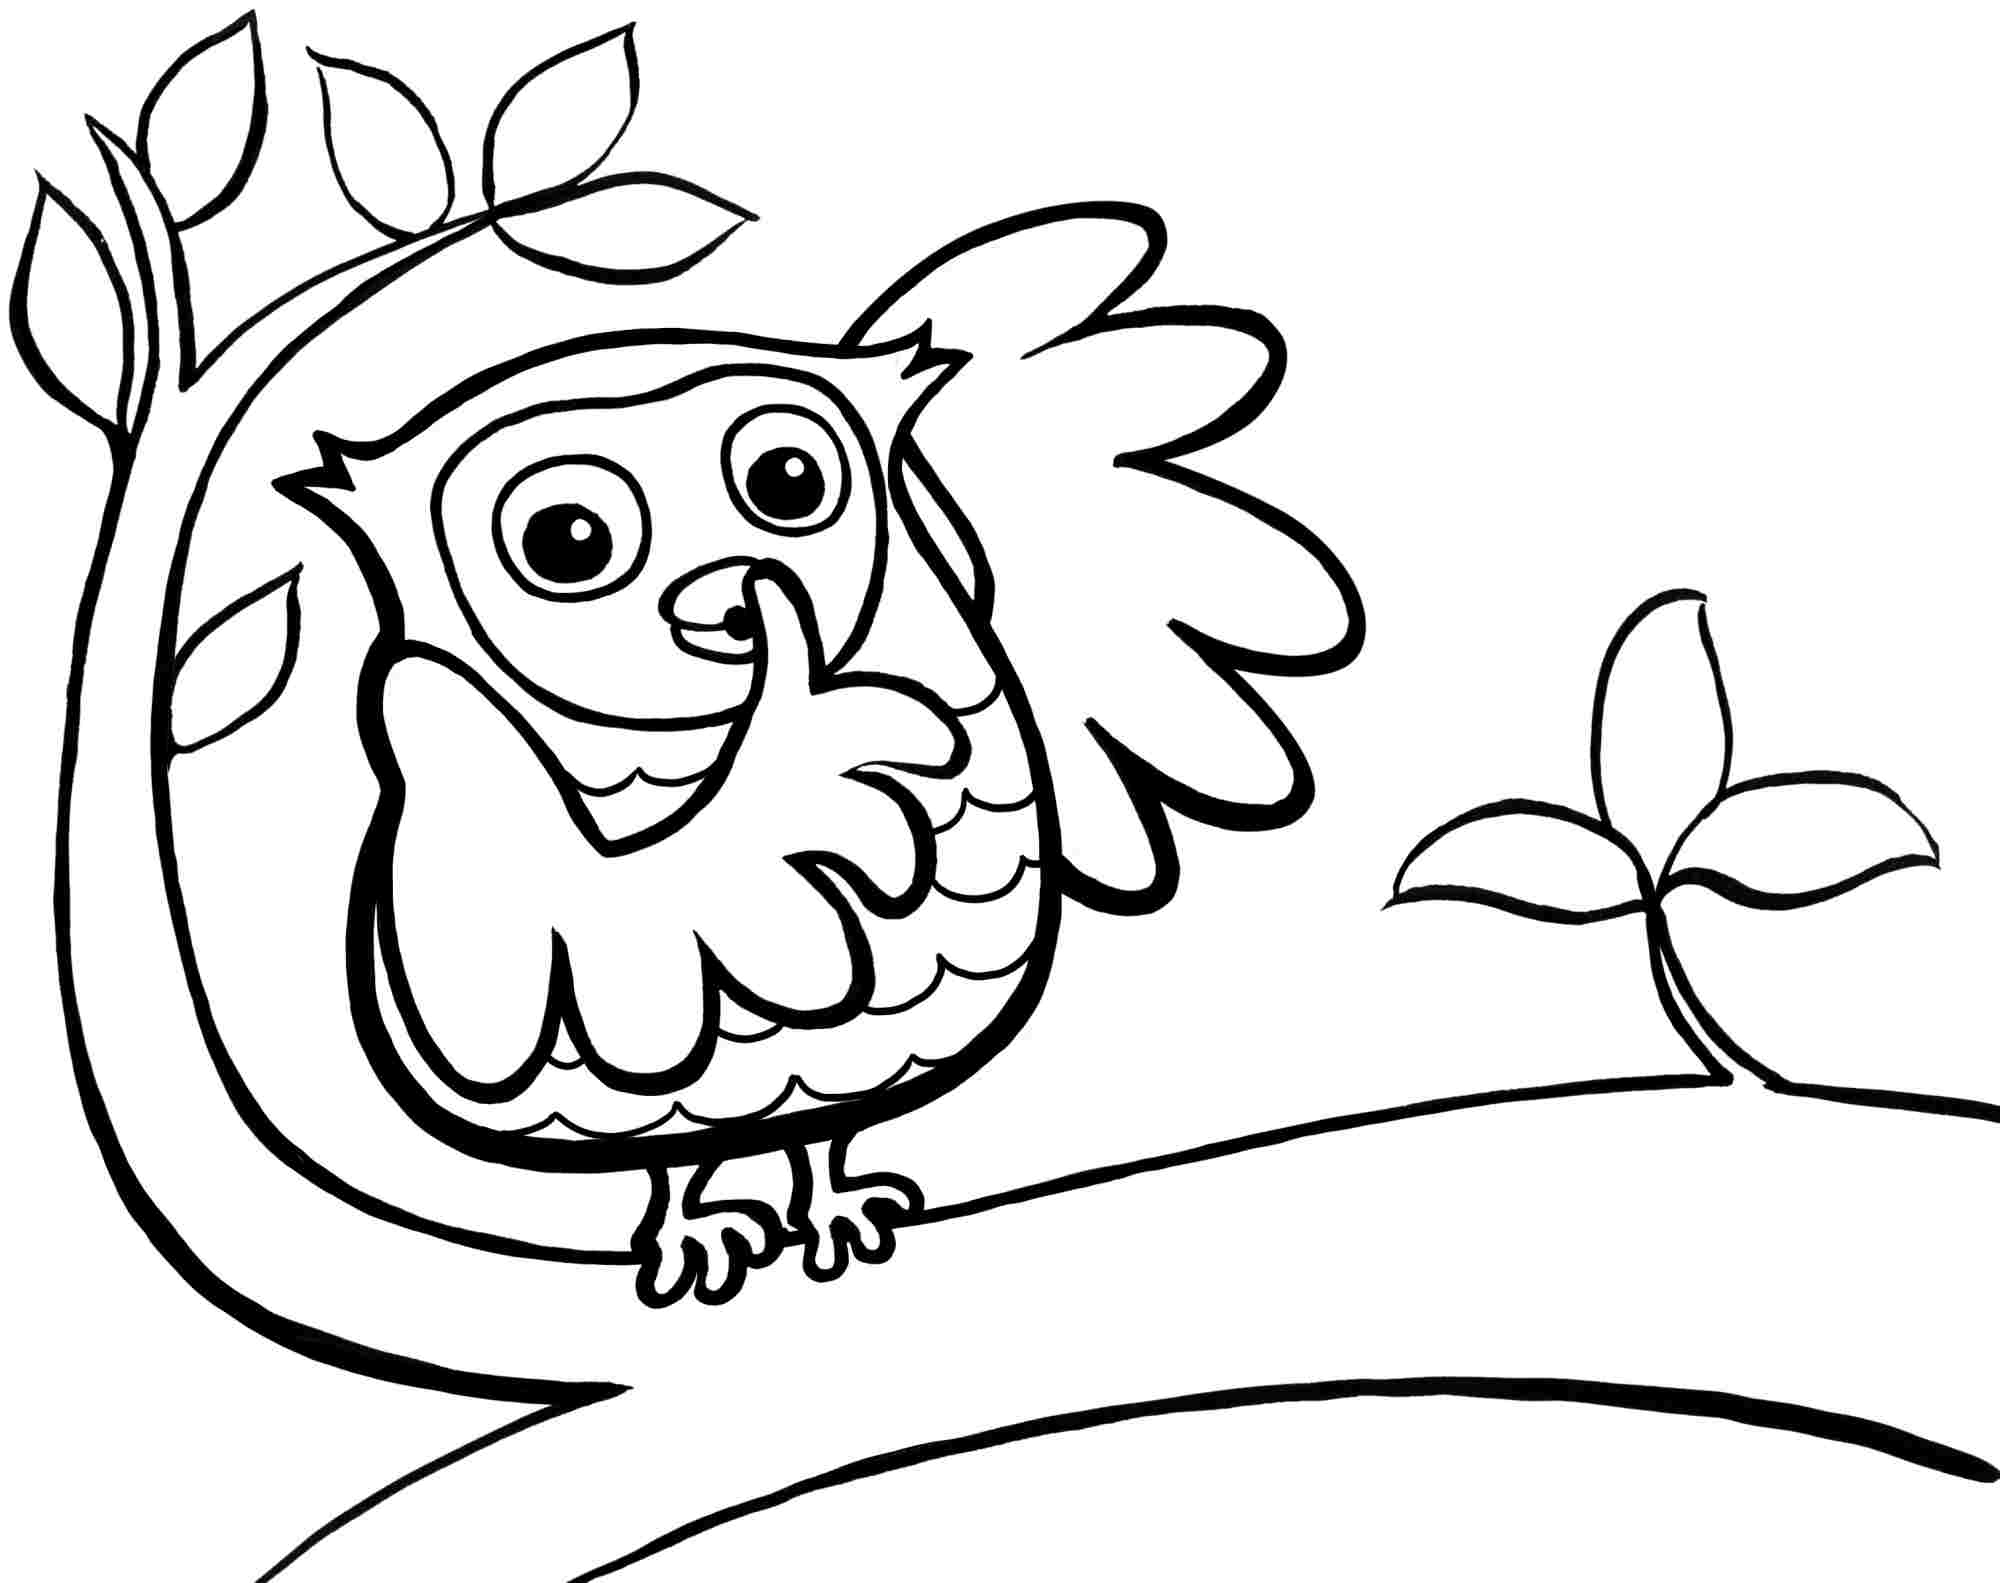 2000x1583 Cute Owl Coloring Pages Getcoloringpages Collection